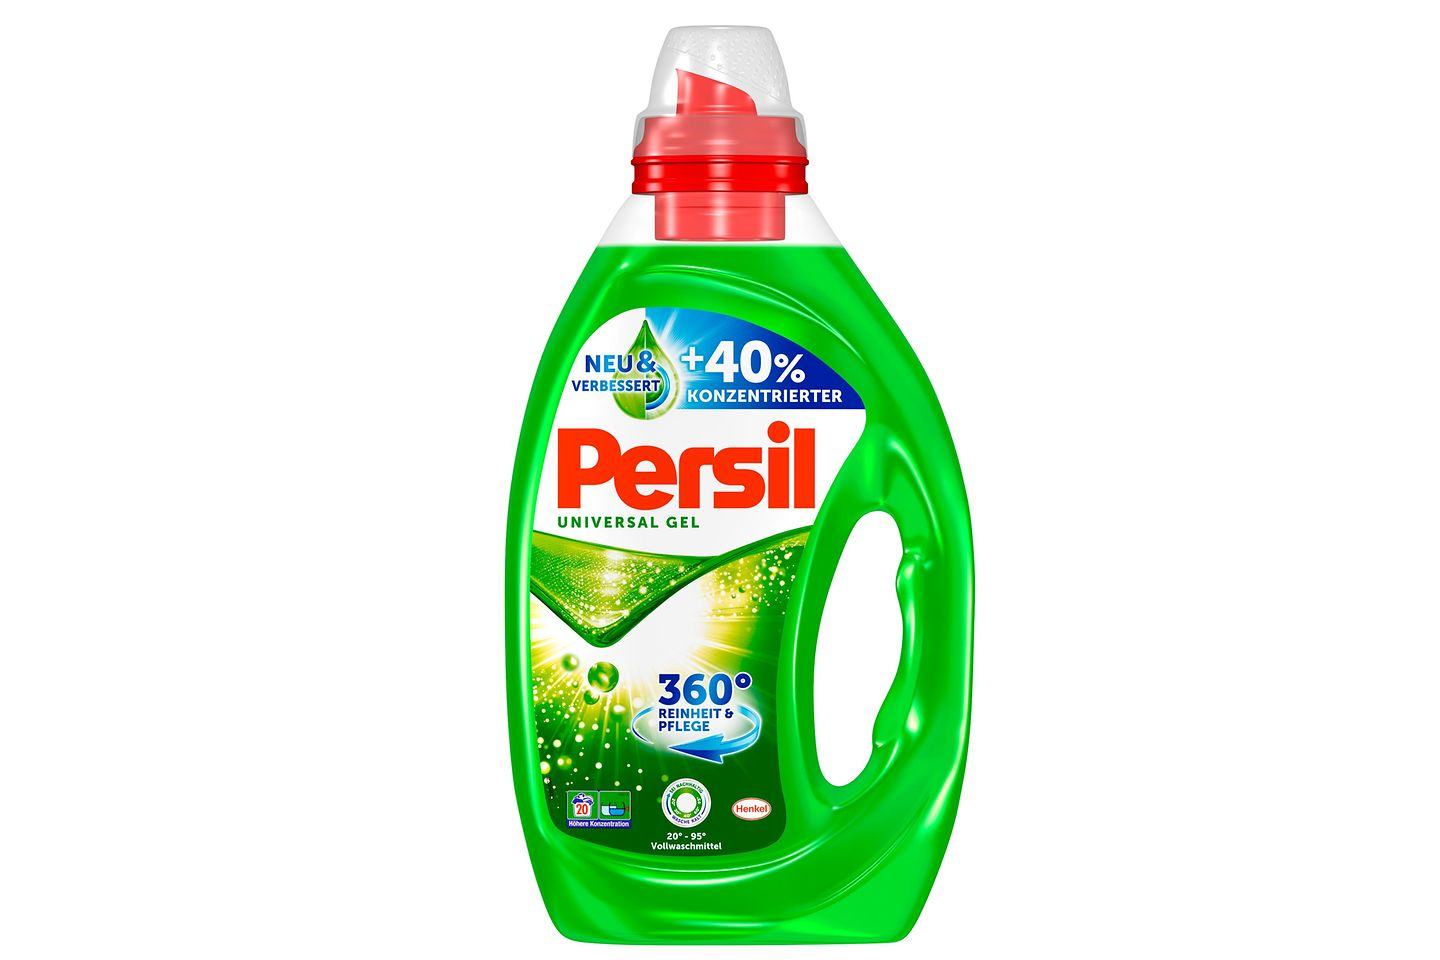 Persil - The bottles are 100 percent recyclable